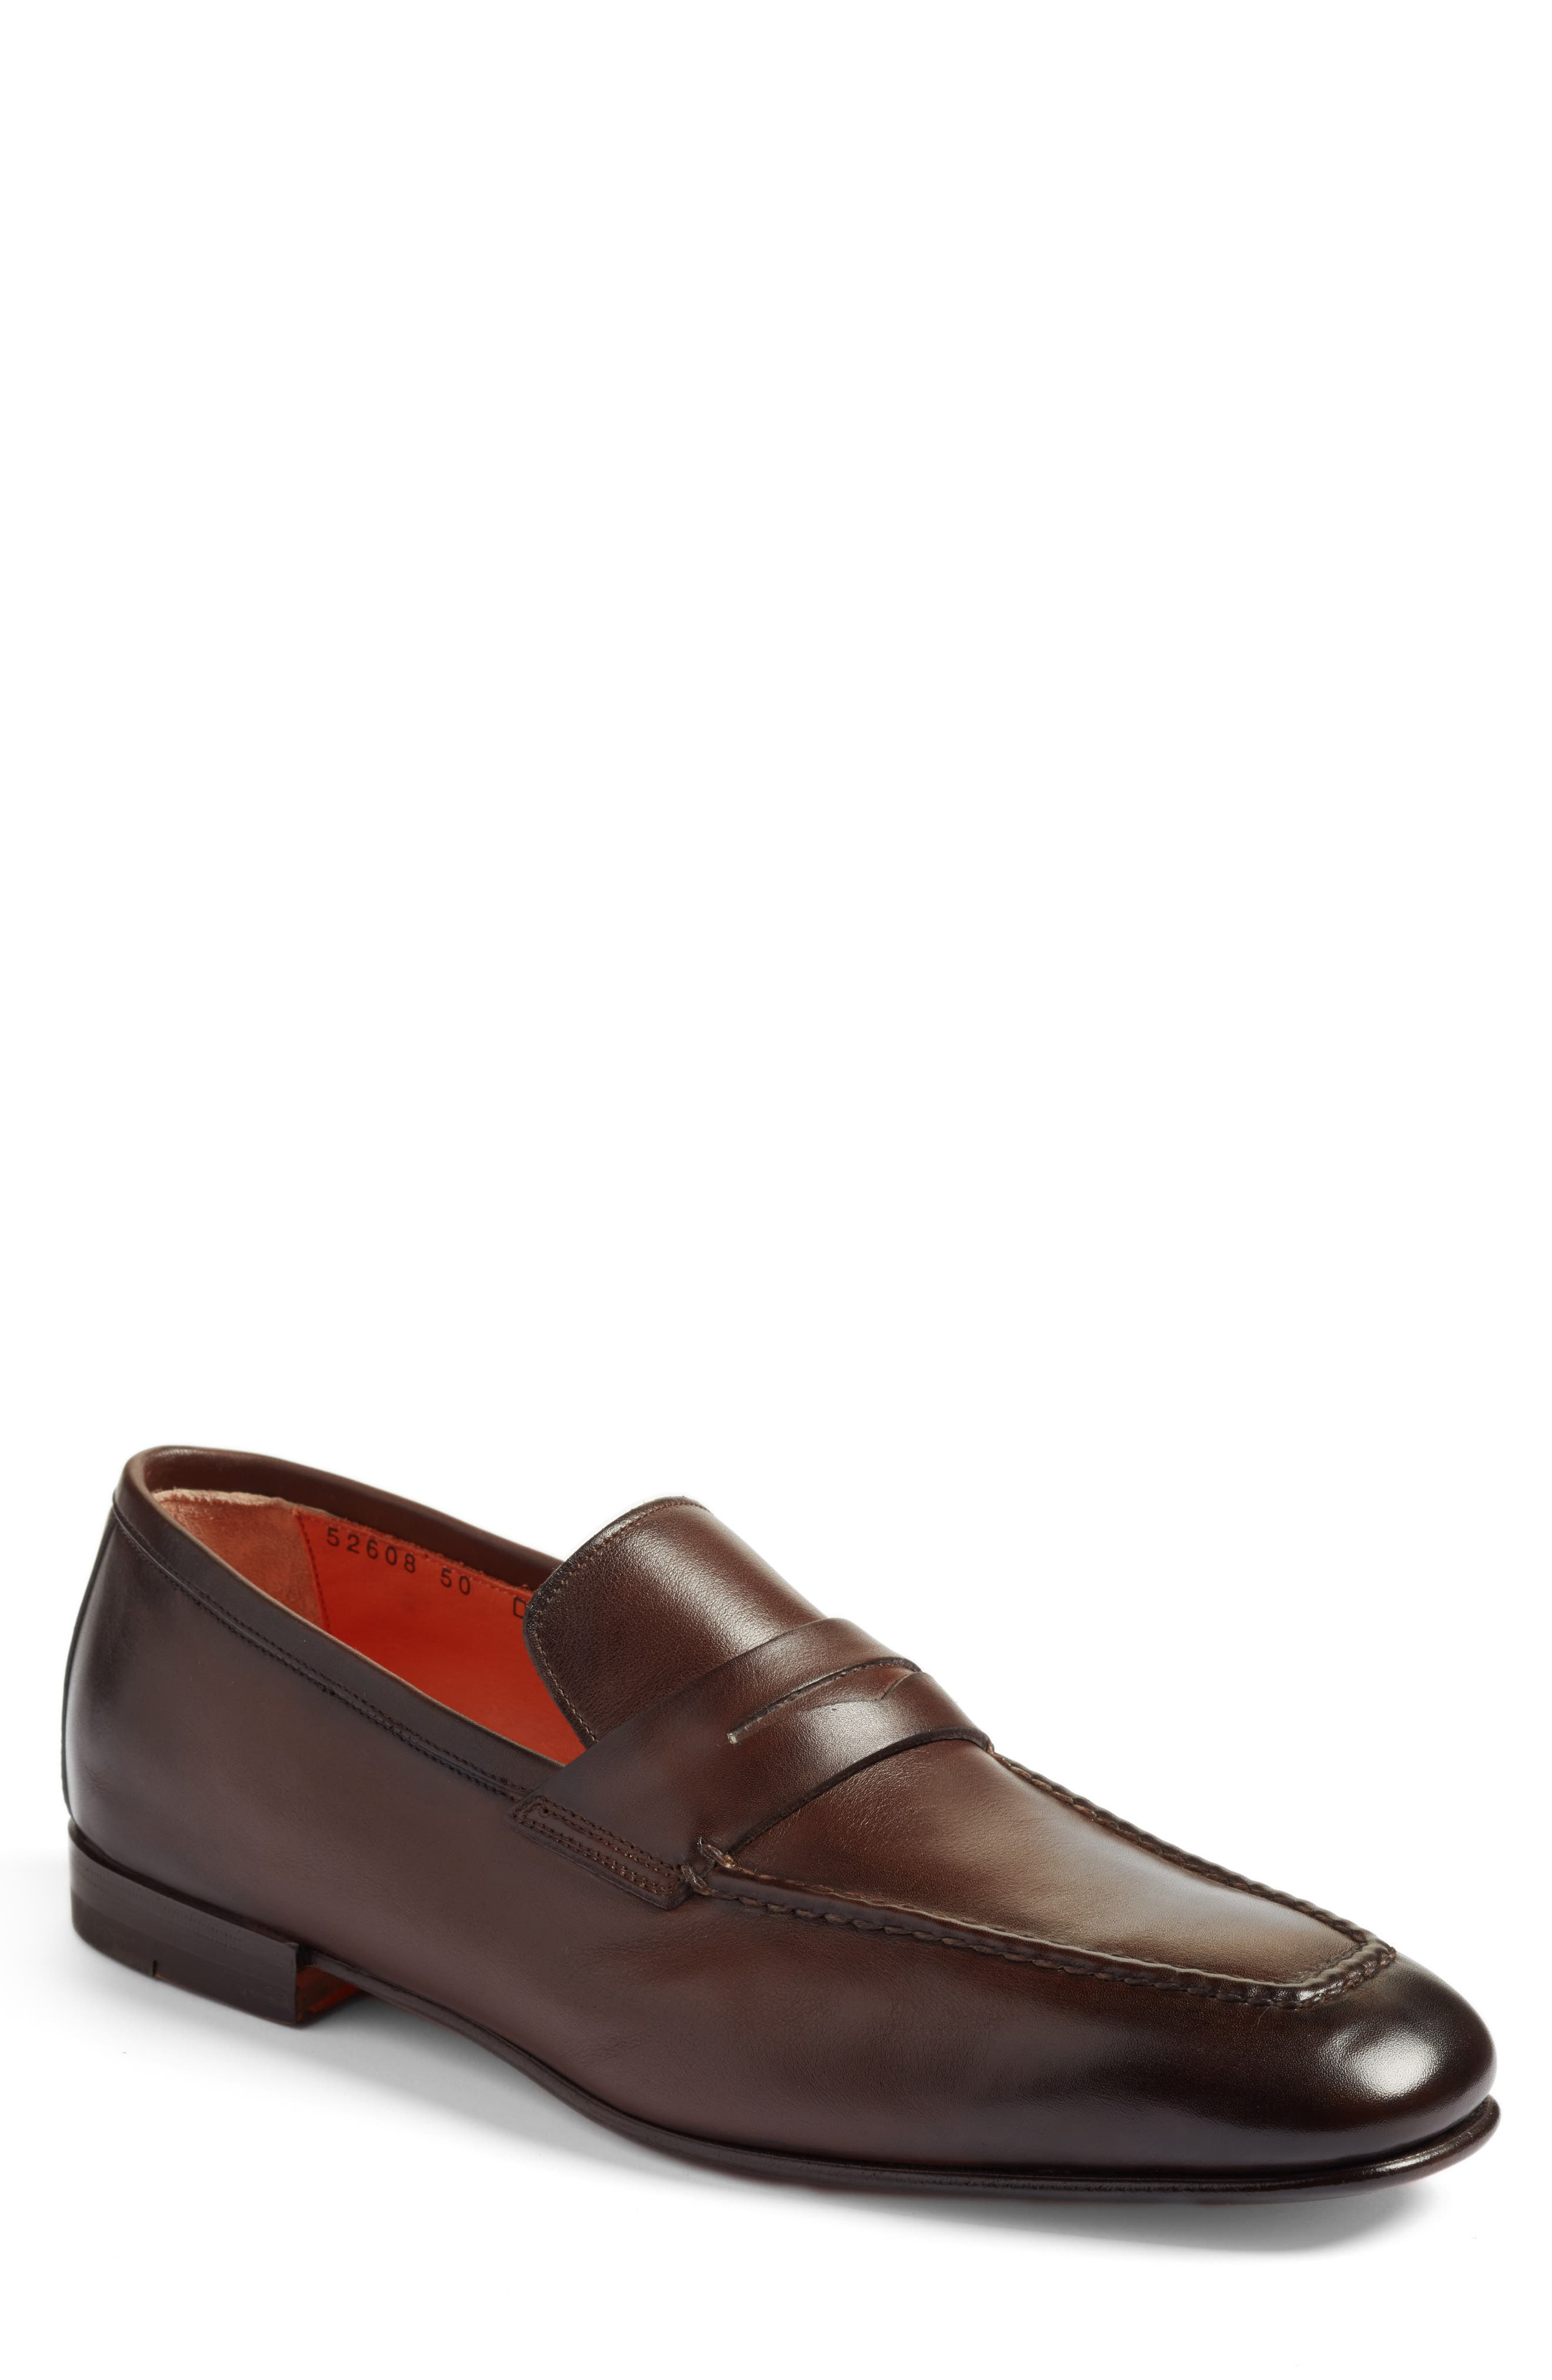 Fox Packable Penny Loafer,                         Main,                         color, DARK BROWN LEATHER